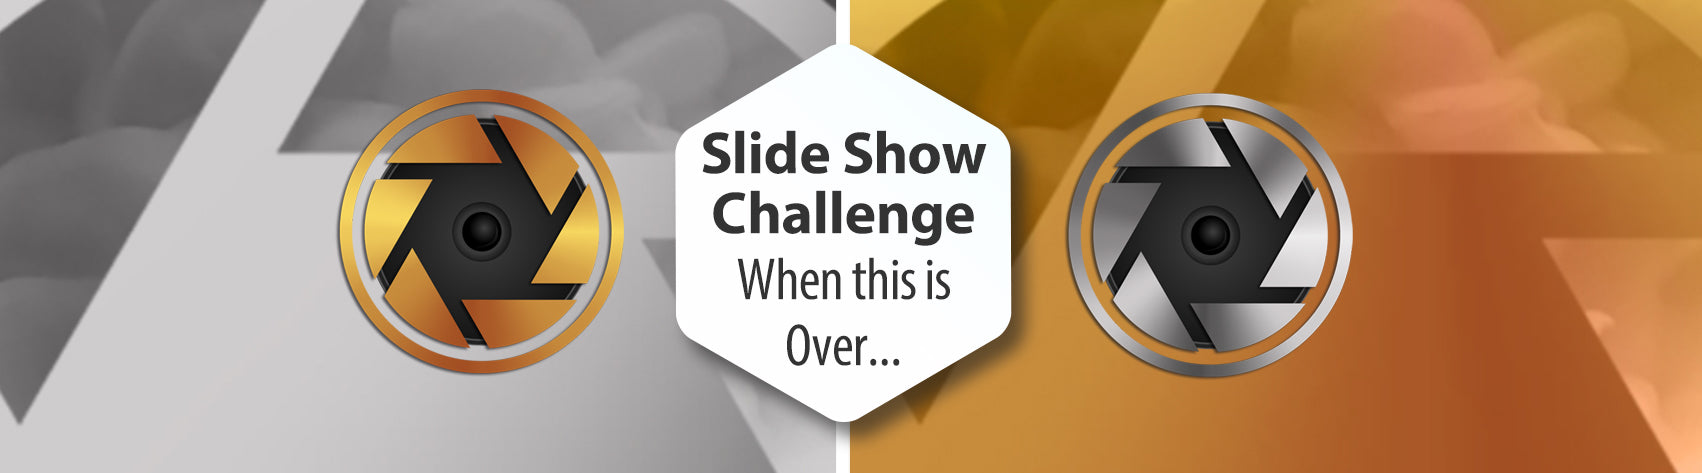 Slide Show Challenge - When This is Over